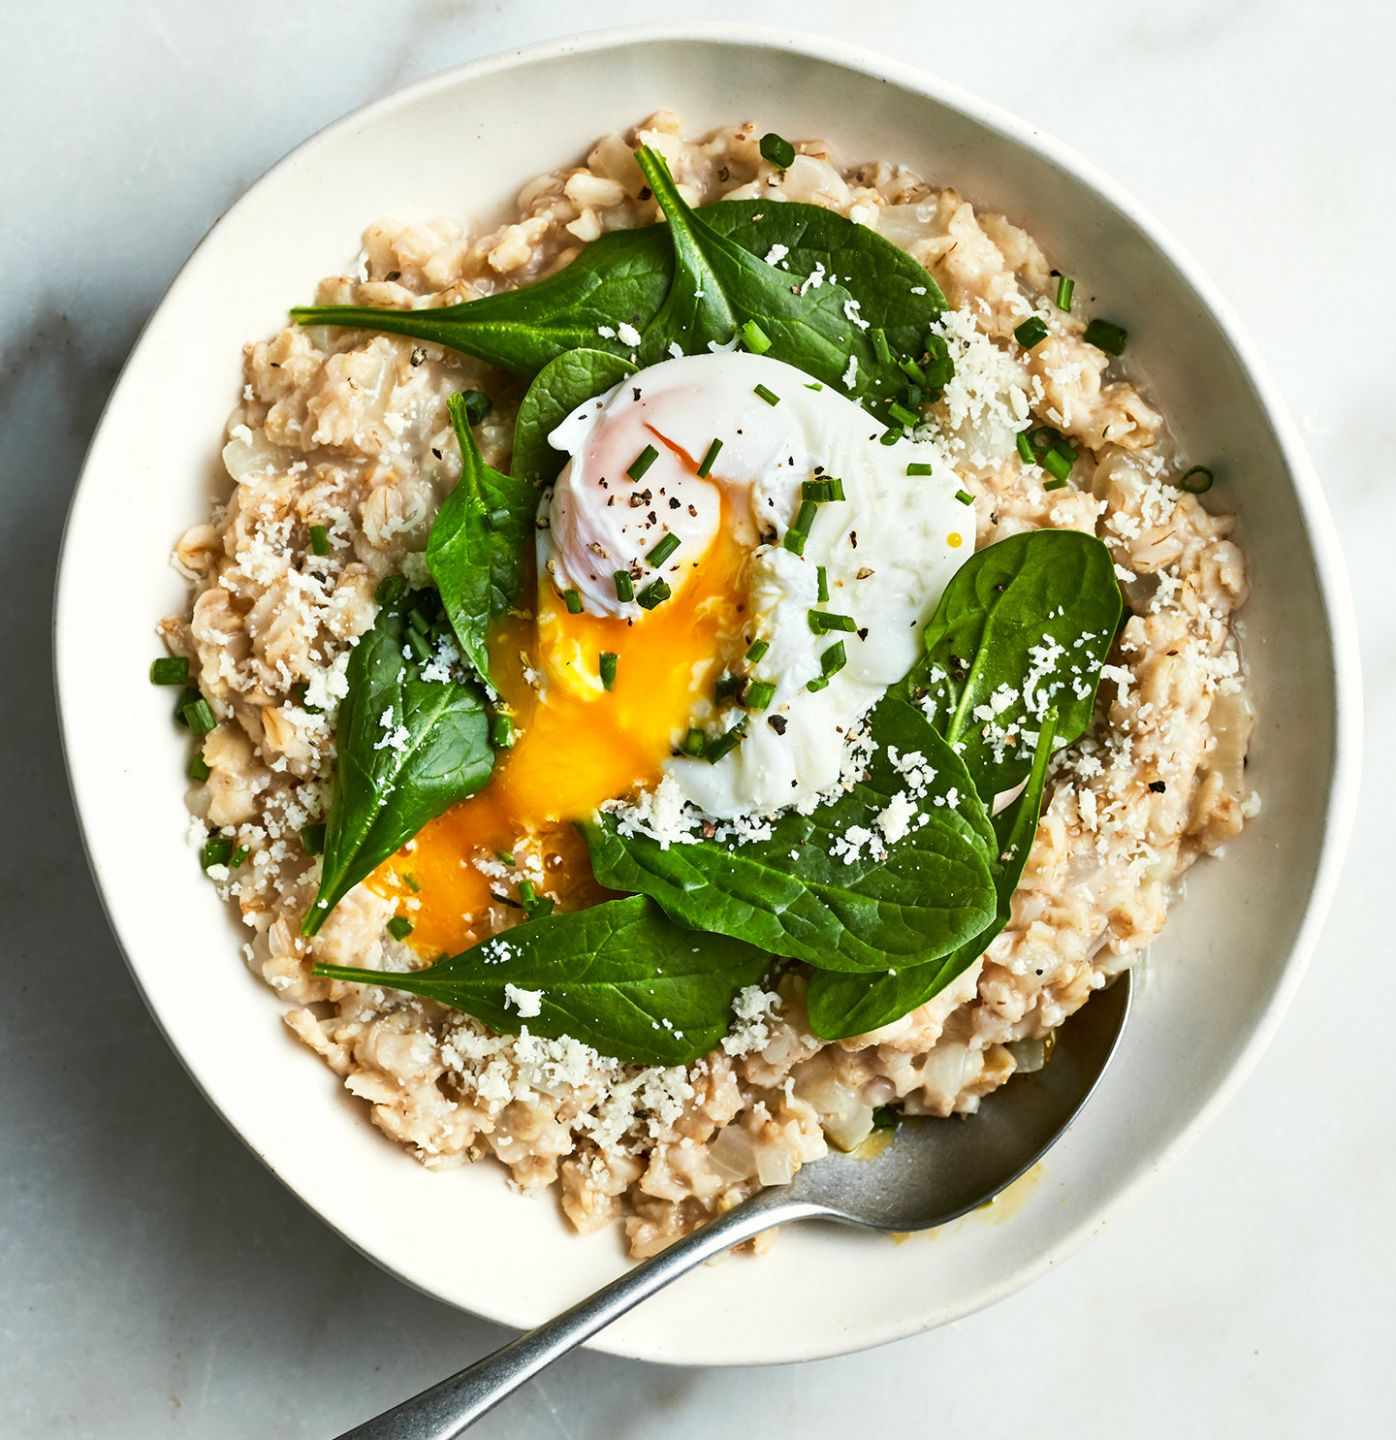 Savory Oatmeal With Spinach and Poached Eggs - Recipe Egg Oats